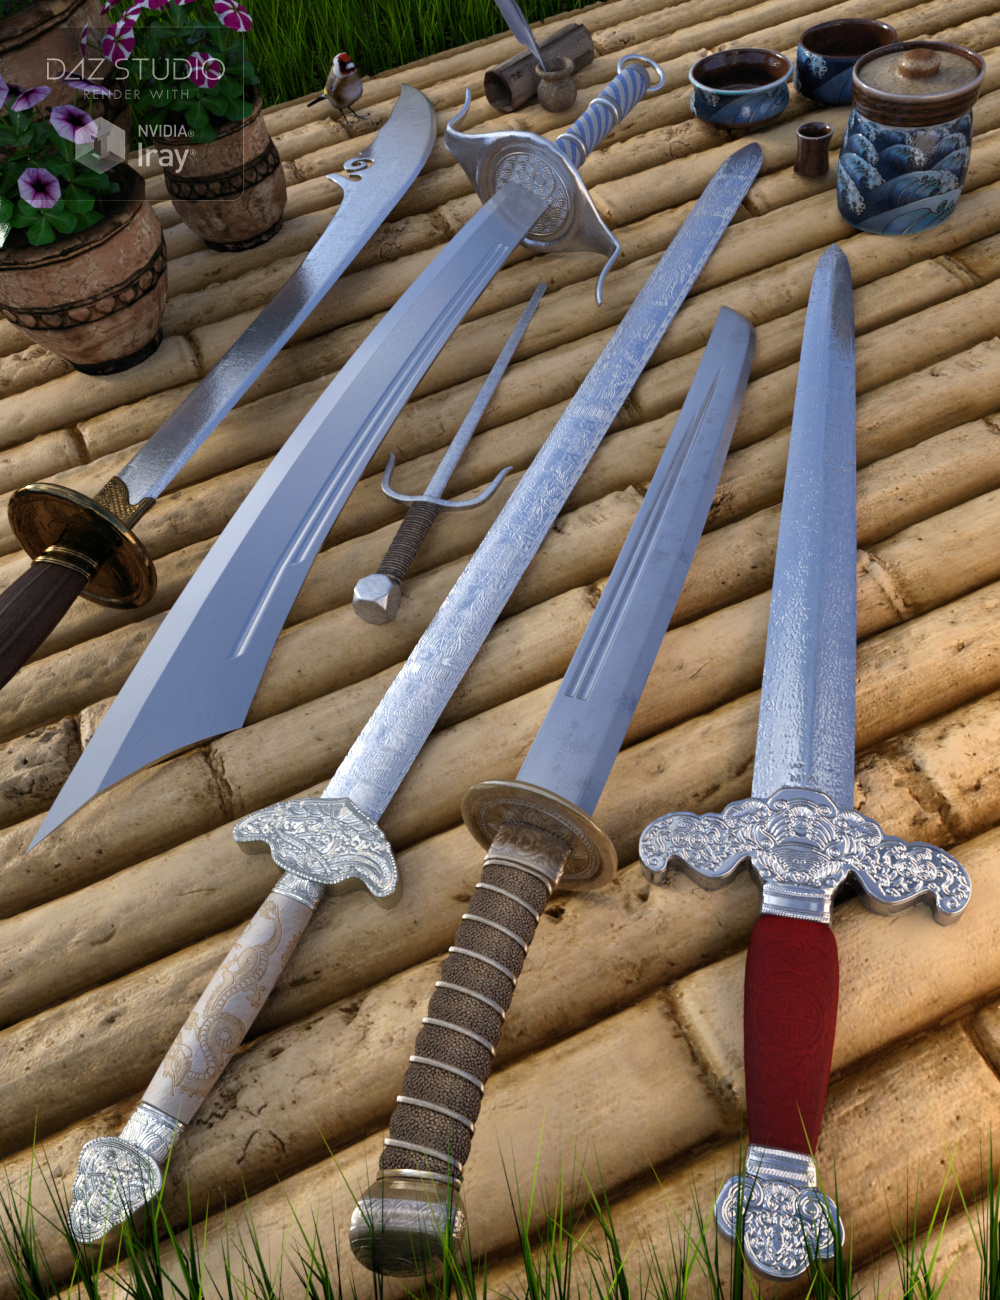 Chinese Blades for Genesis 3 and 8 Male(s) and Female(s) by: Merlin Studios, 3D Models by Daz 3D